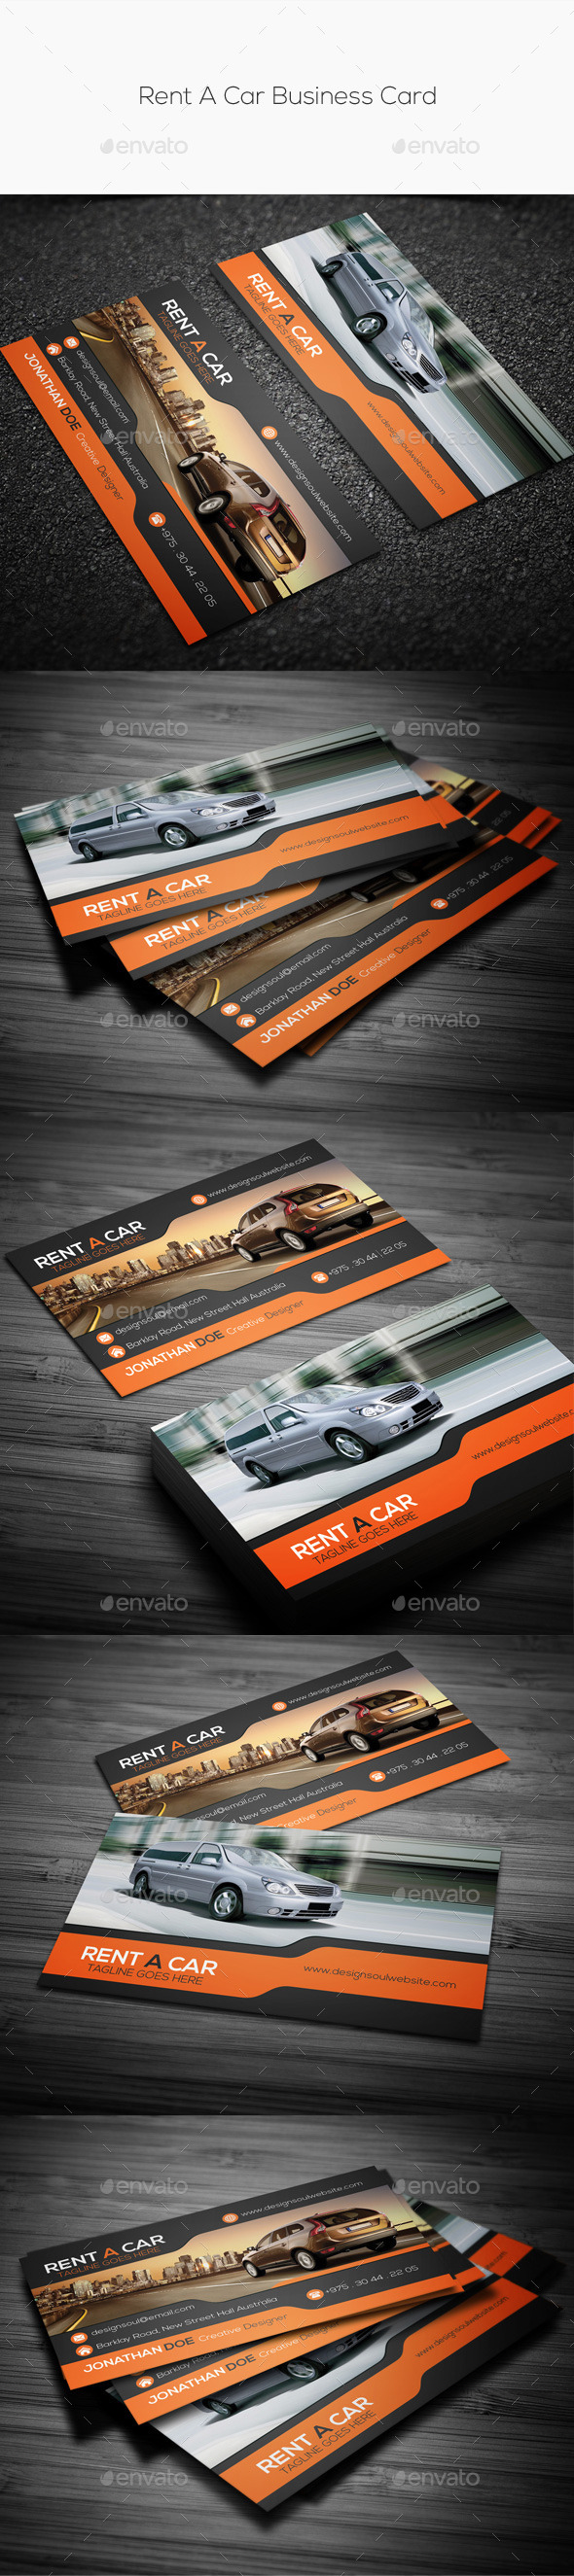 GraphicRiver Rent A Car Business Card 11052096